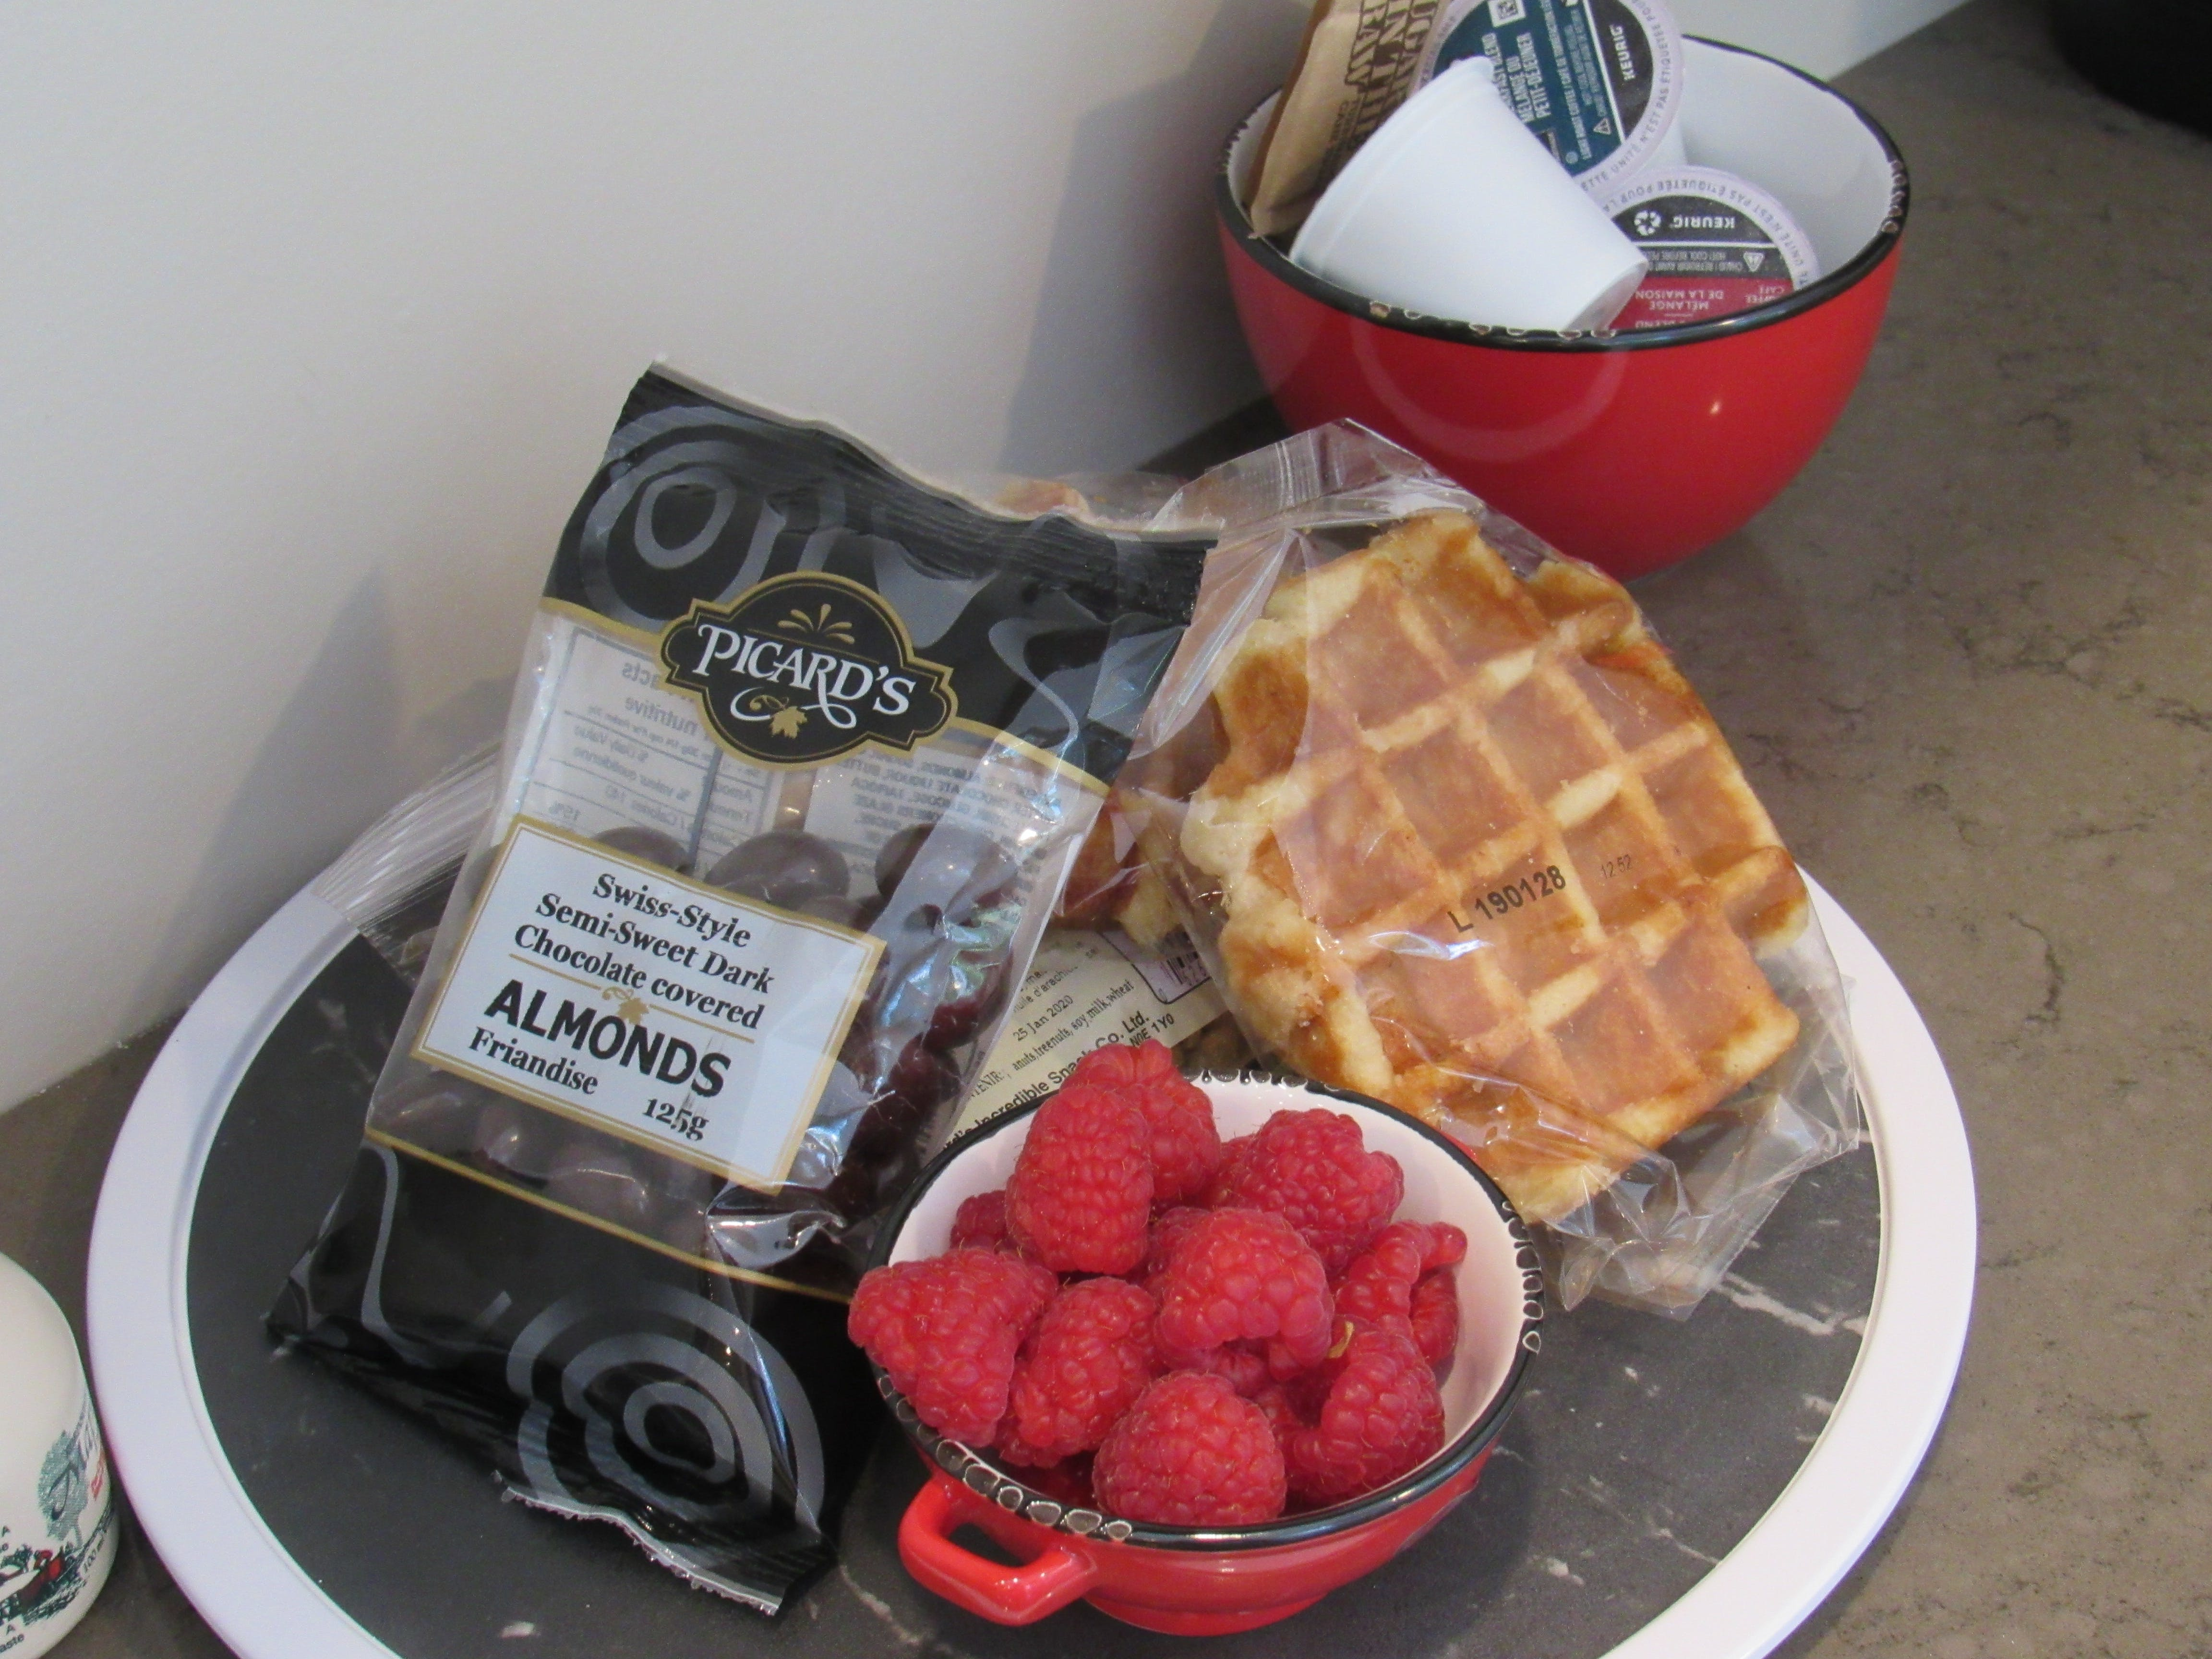 St Jacobs Suite - welcome package includes treats from Picard's peanuts.